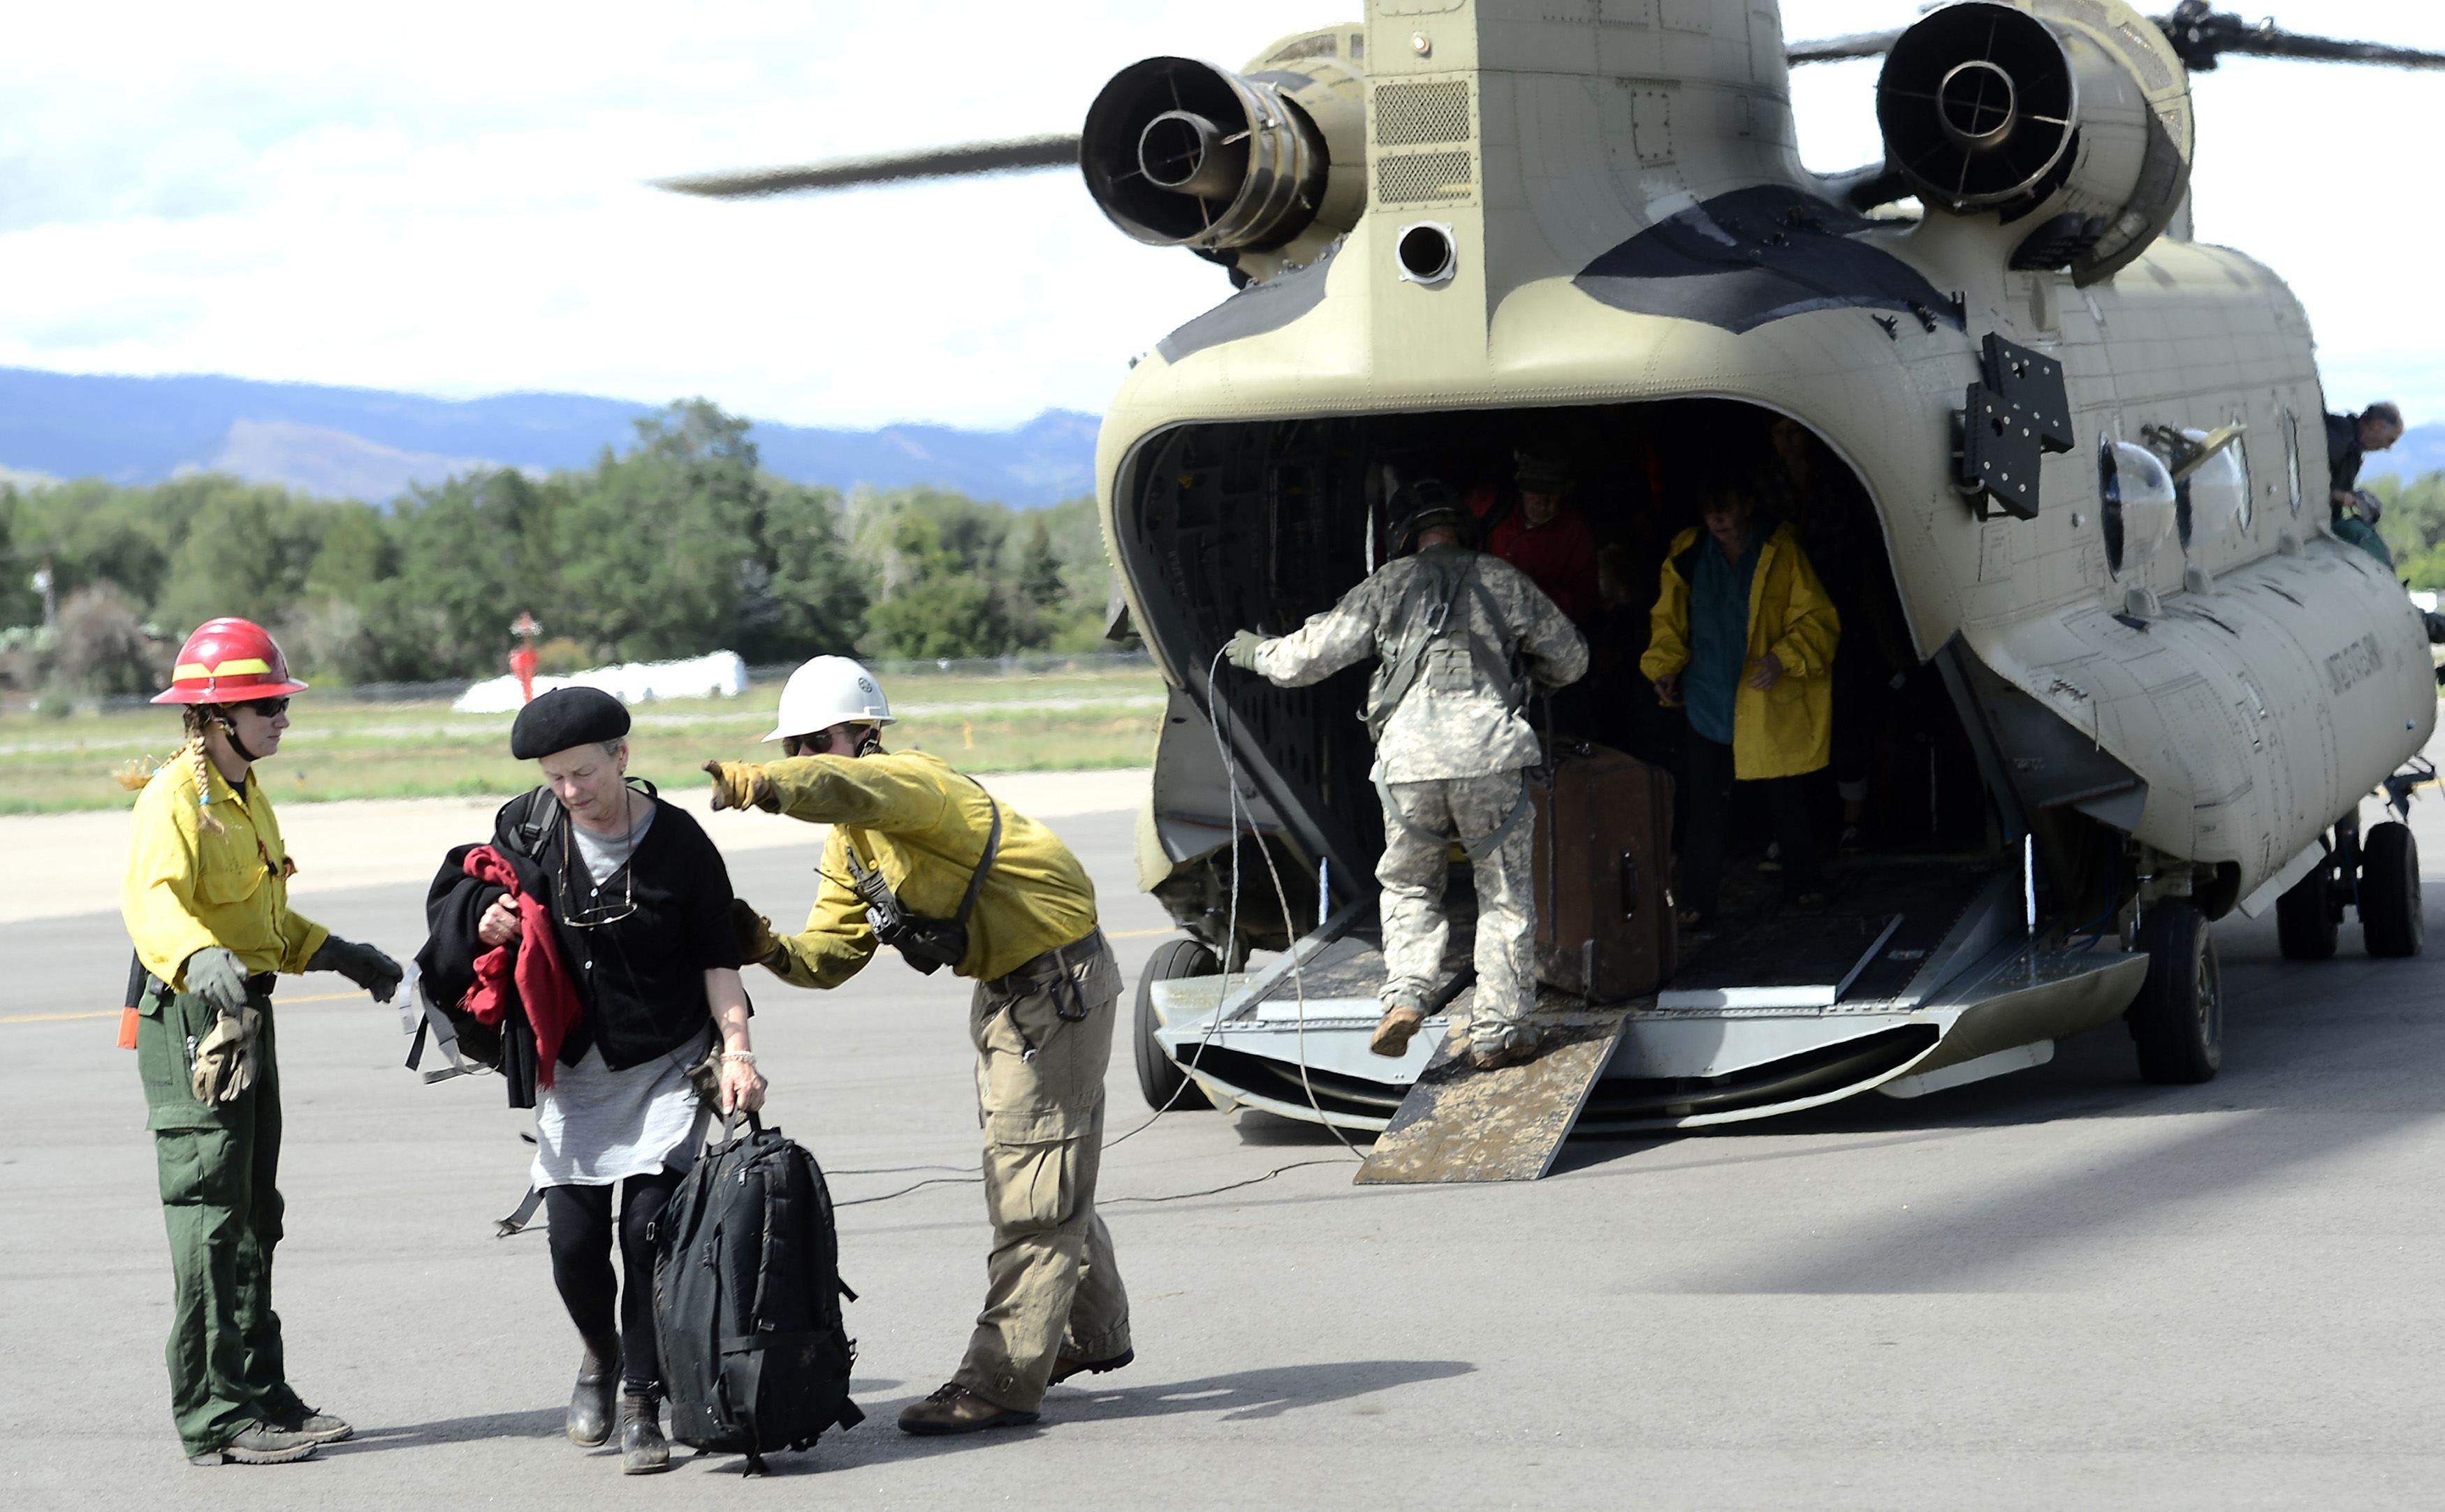 National Guard Helicopter Evacuation